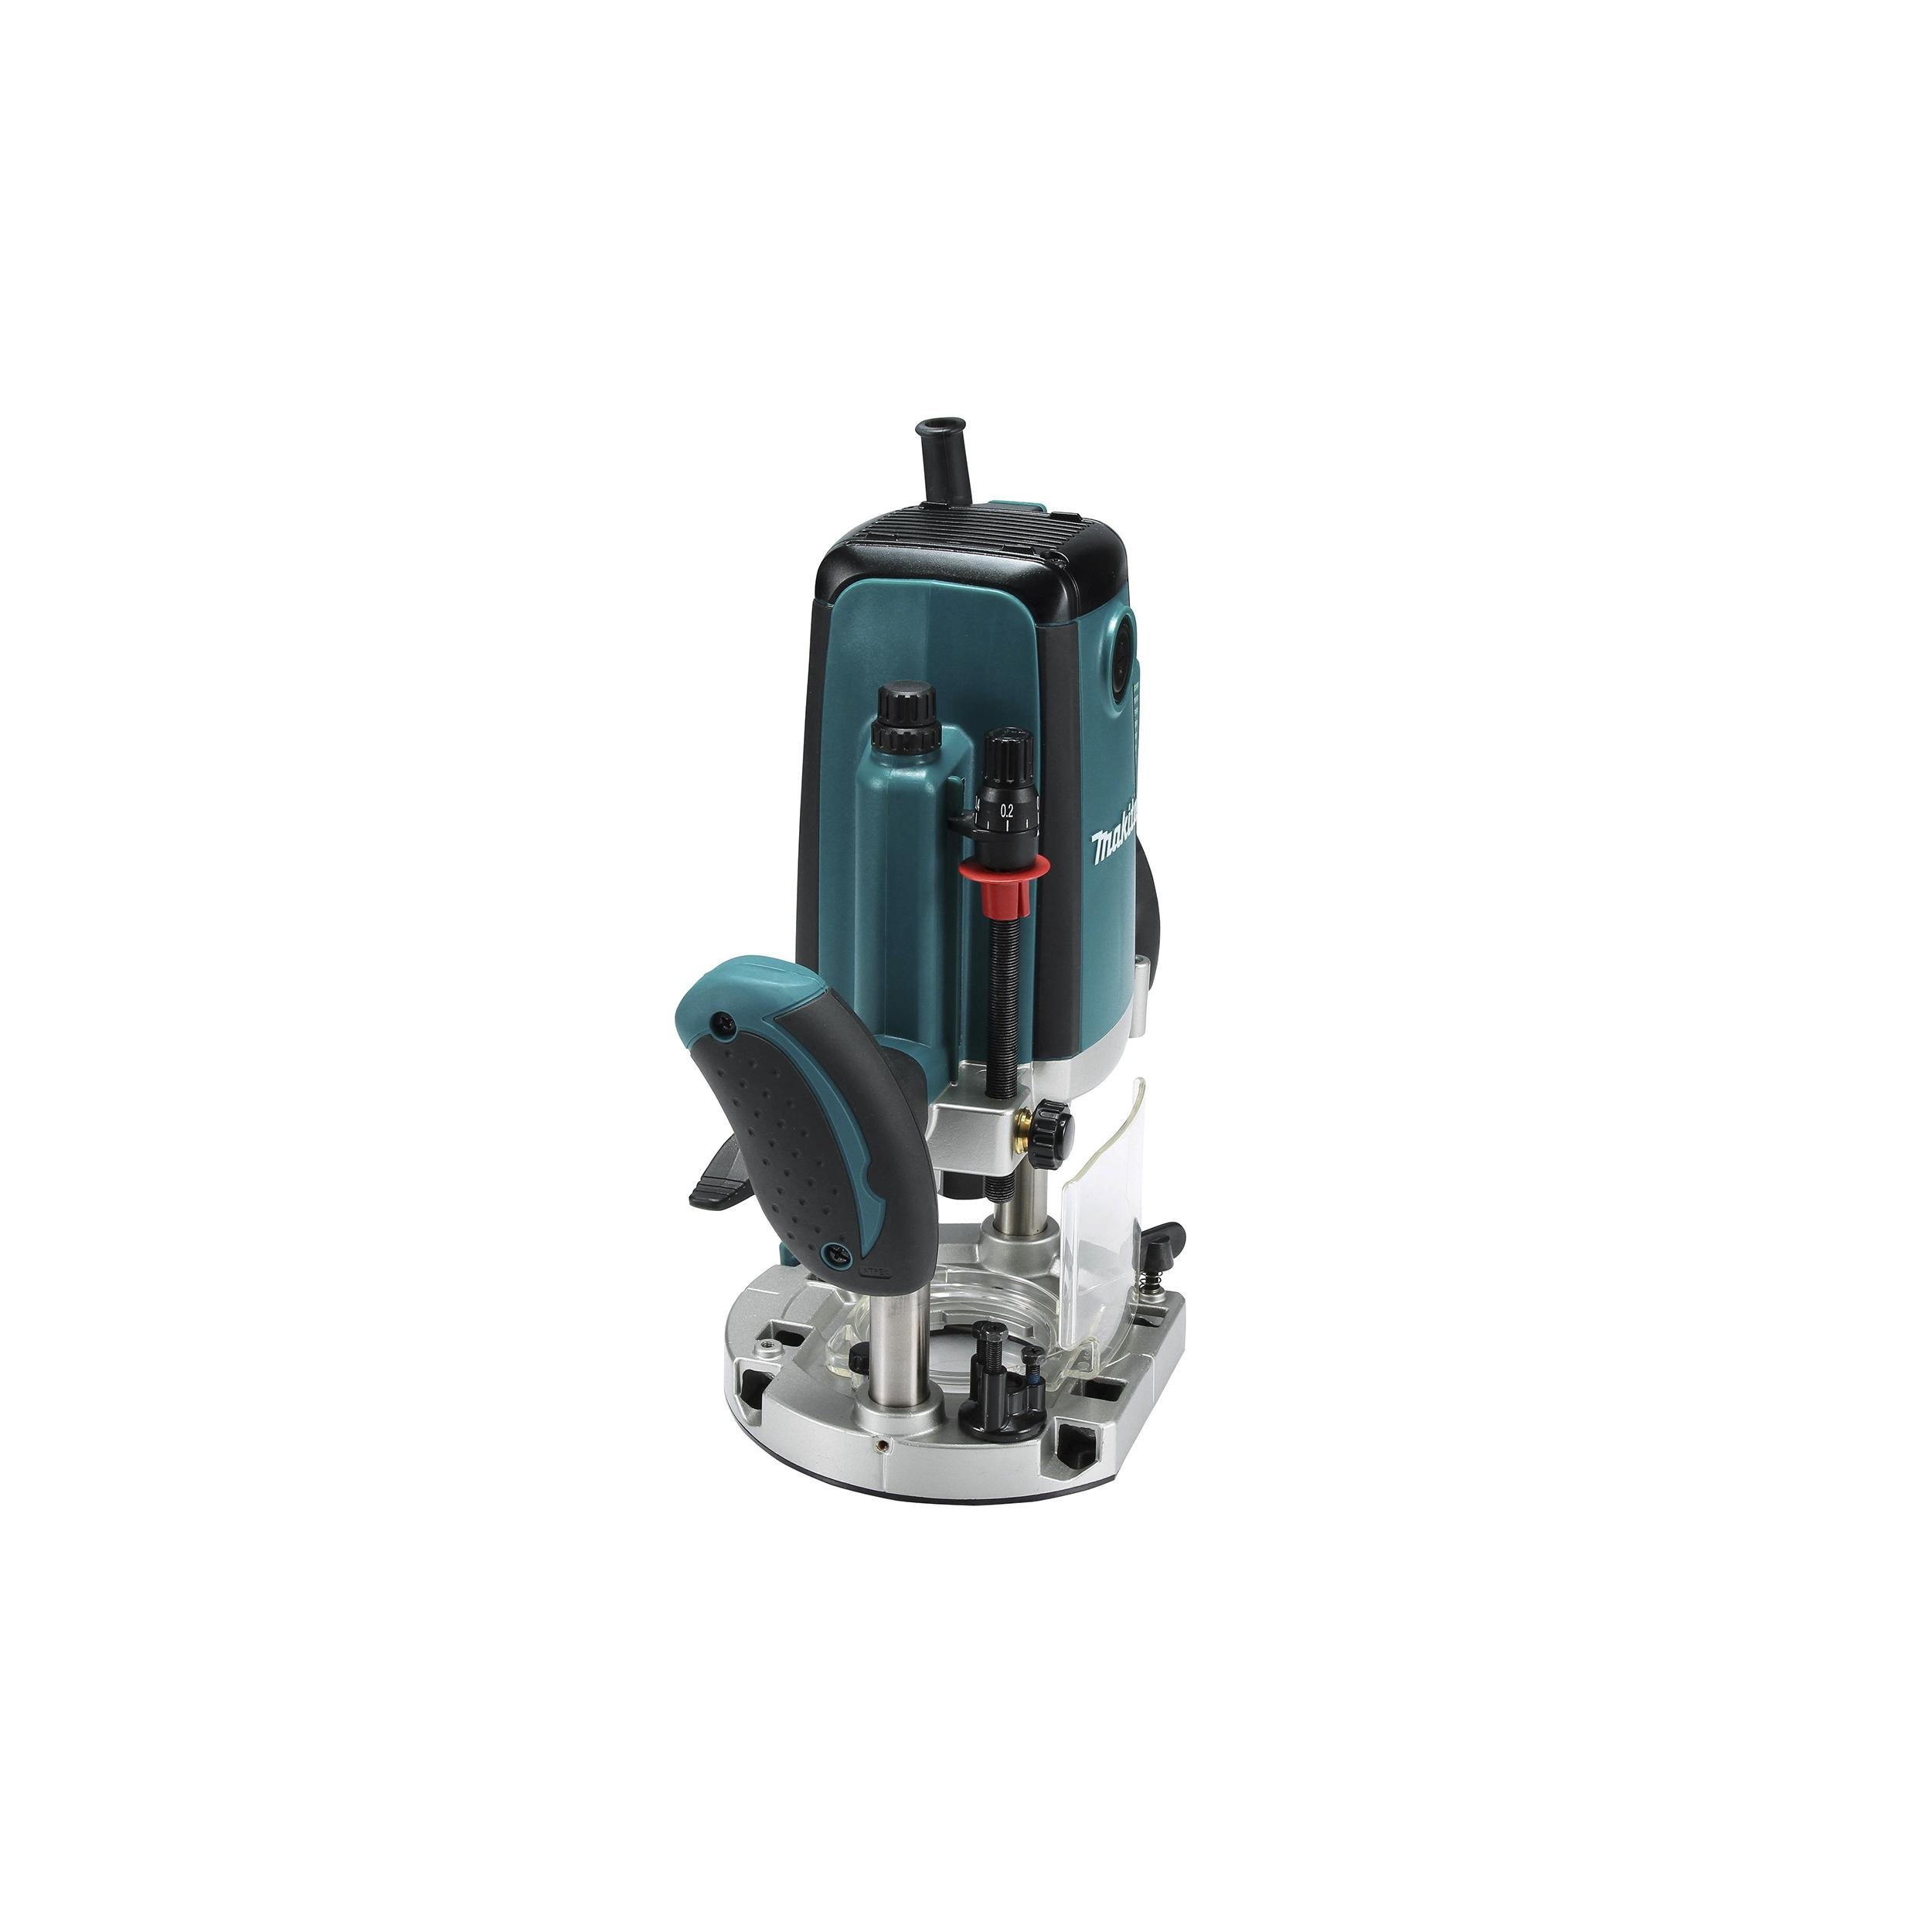 Makita RP2301FC 3-1/4 HP Plunge Router (Variable Speed) by Makita (Image #9)